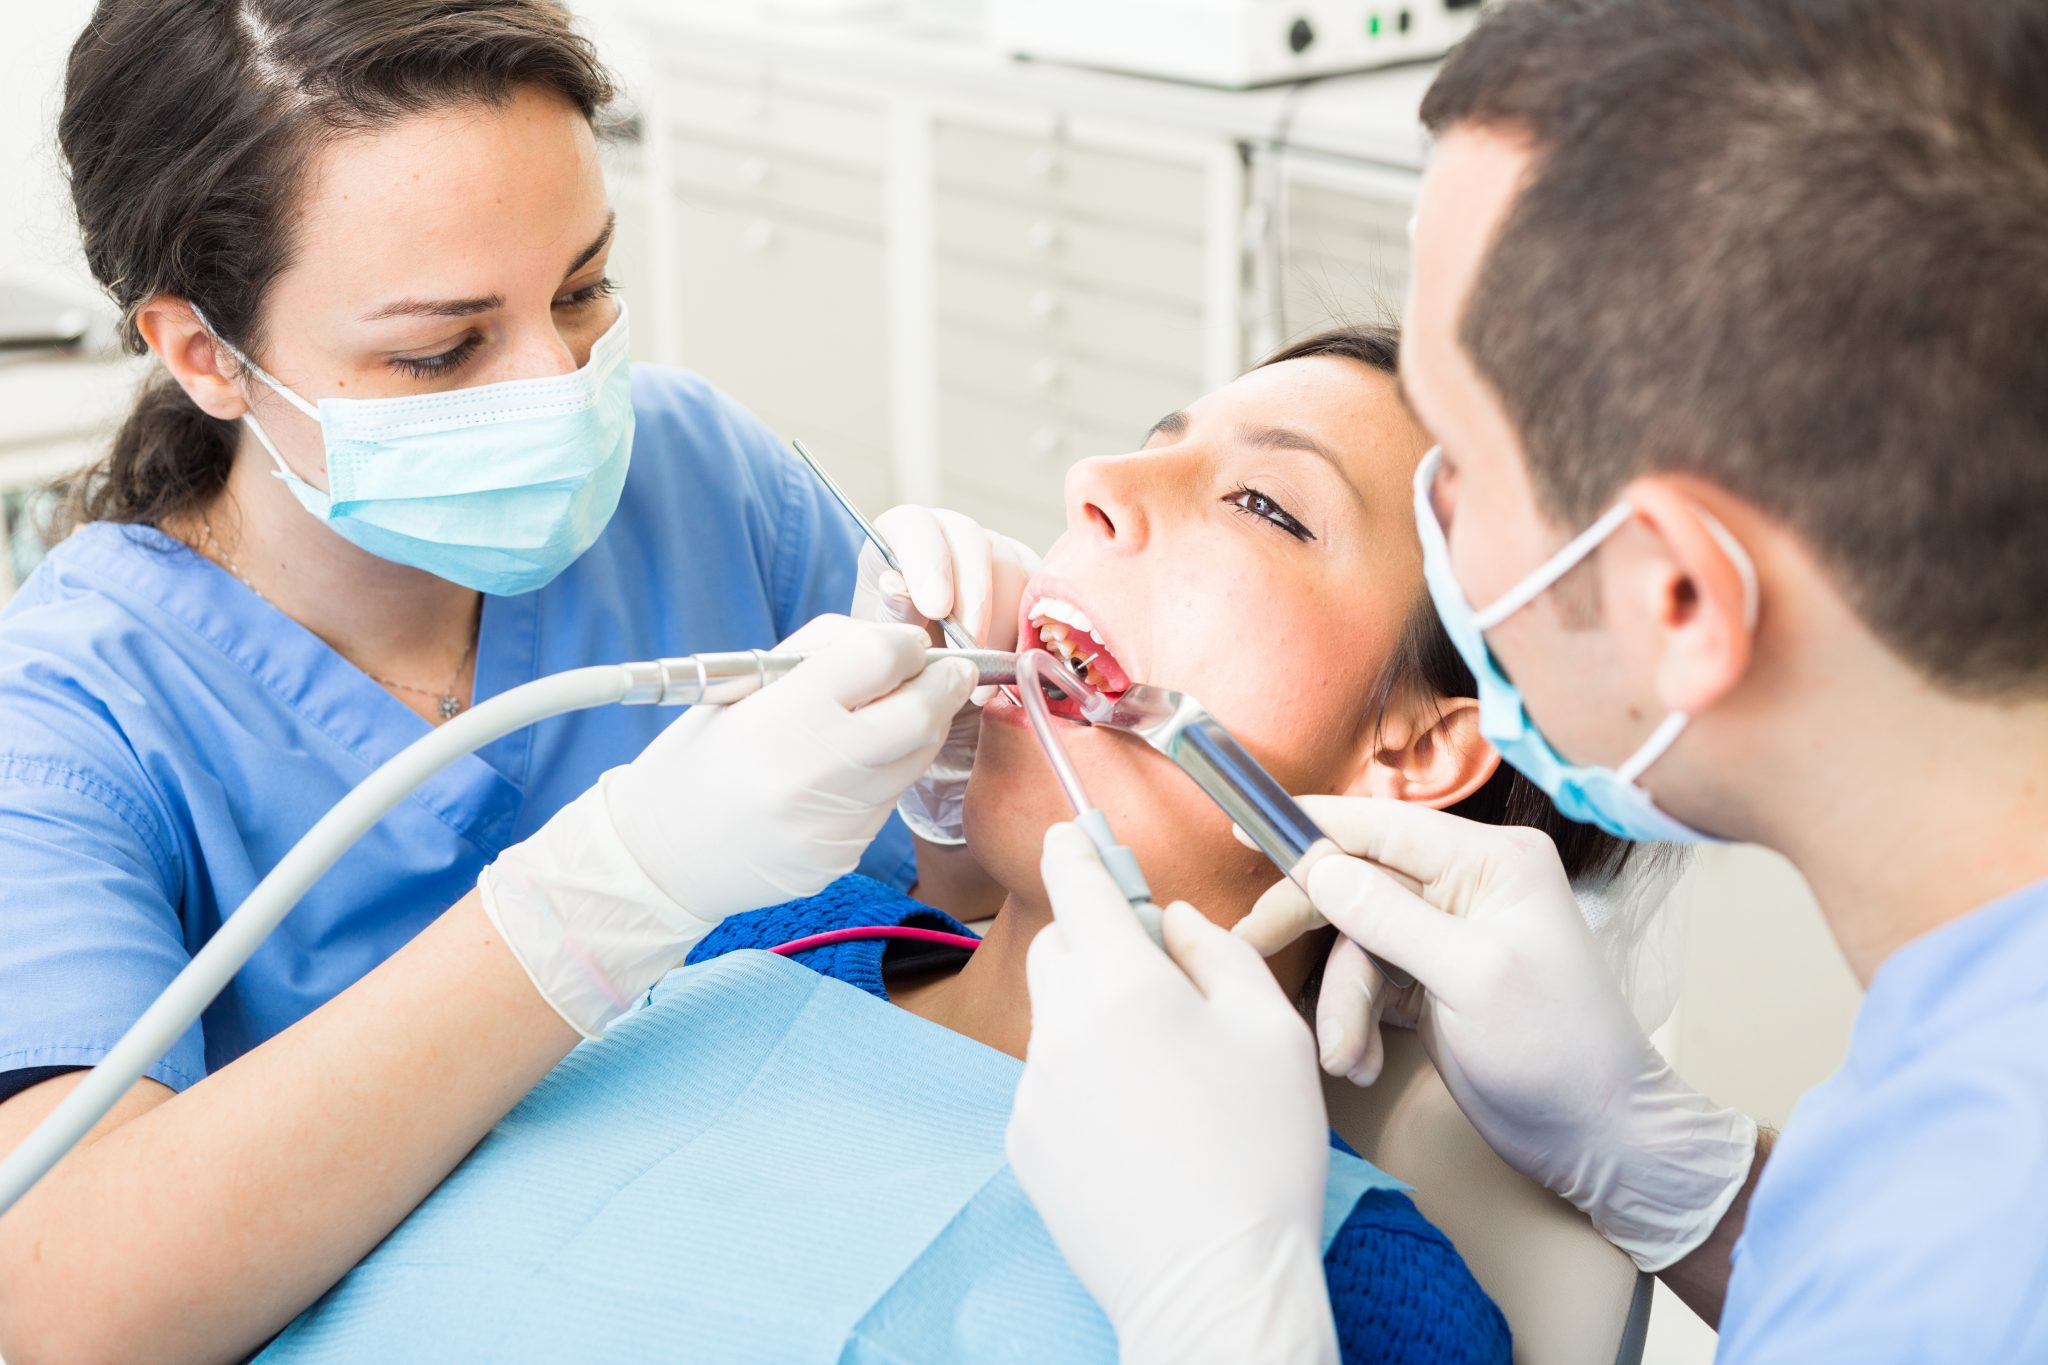 emergency dentist teeth removal missing teeth dental office oral care family dentistry surgery dr sandy dr peter mitchell & associates kelowna